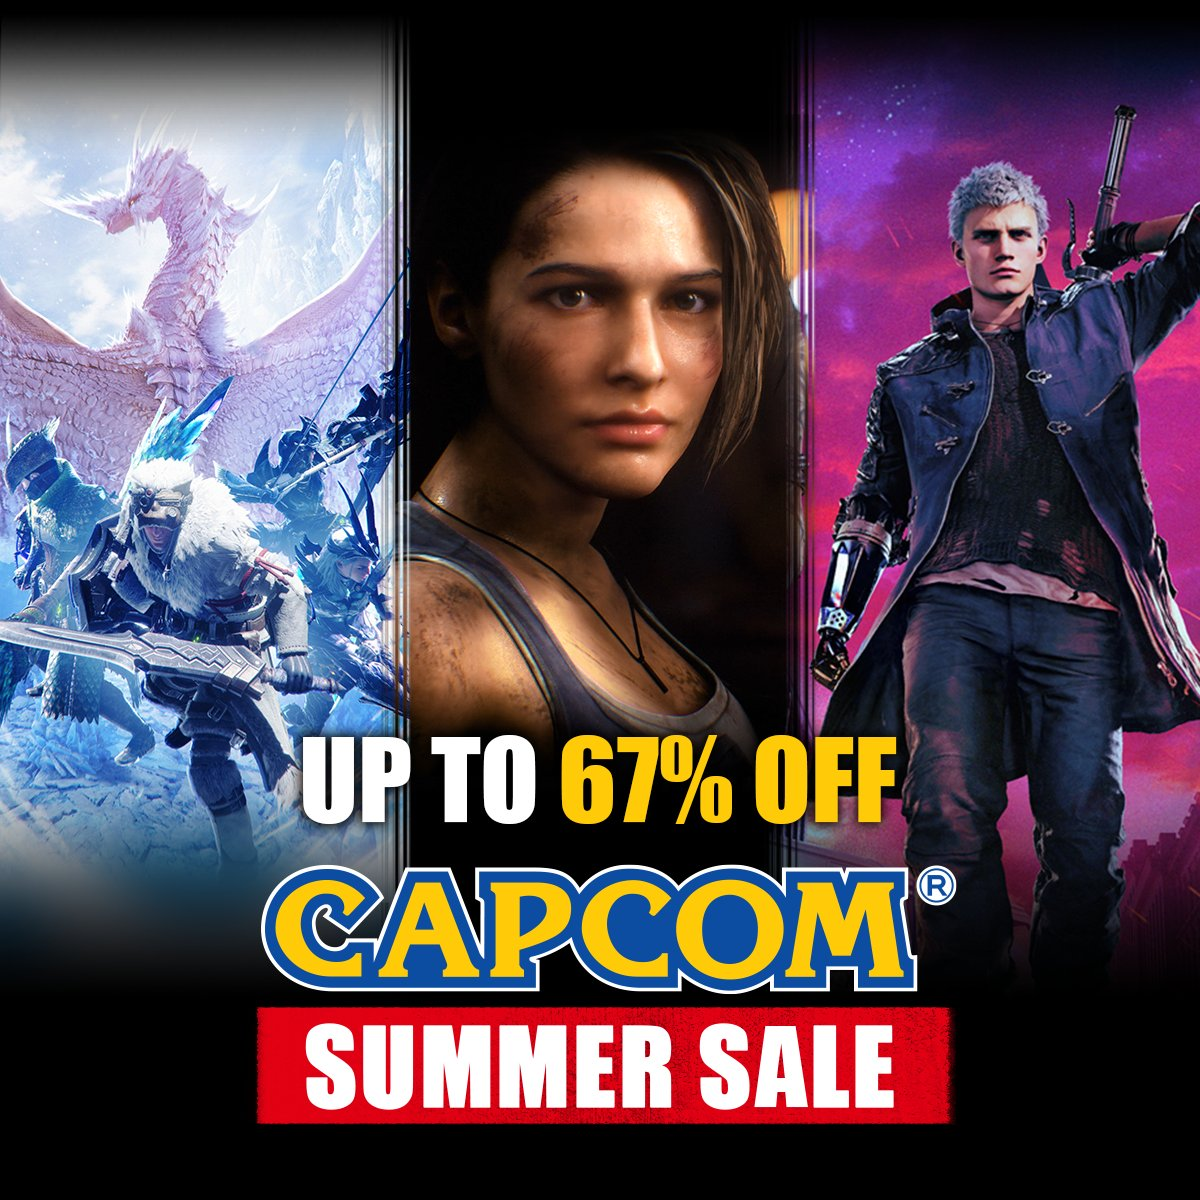 Capcom Summer Sale brings together great games at great prices, now through June 15.  Save big on @RE_Games, @monsterhunter, @DevilMayCry, and more! 🛒 https://t.co/5u15ZIE6D4 https://t.co/hDsBSFg5Tv